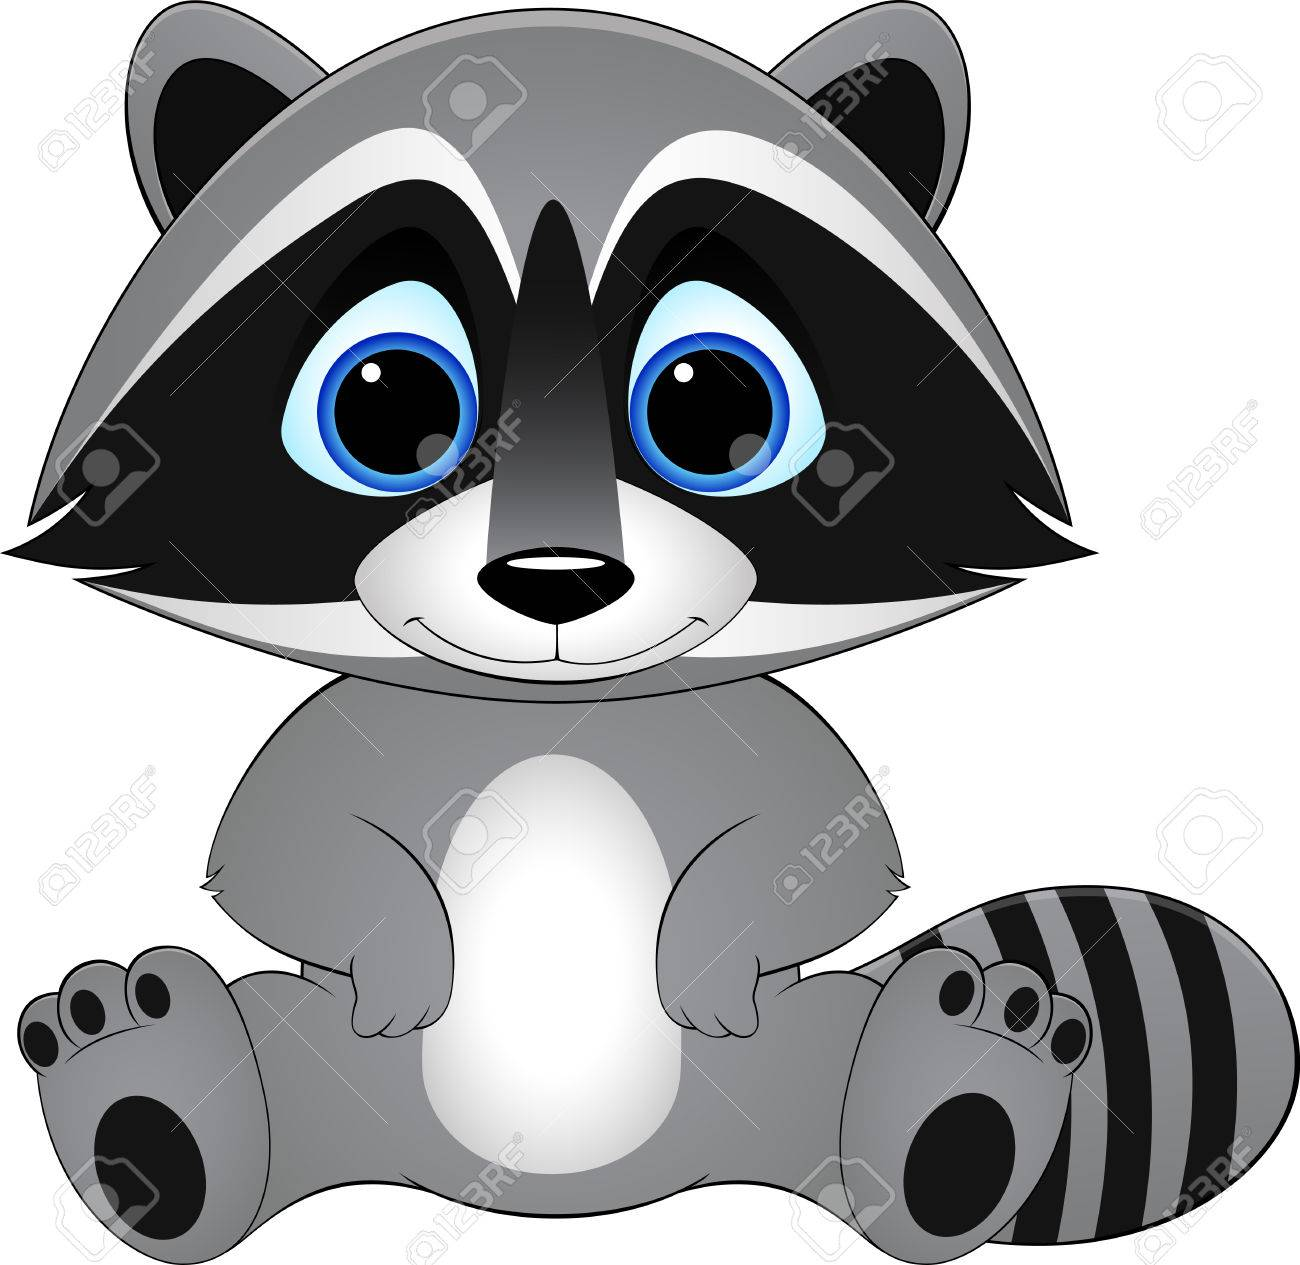 10 636 raccoon cliparts stock vector and royalty free raccoon rh 123rf com rocket raccoon clipart raccoon silhouette clip art